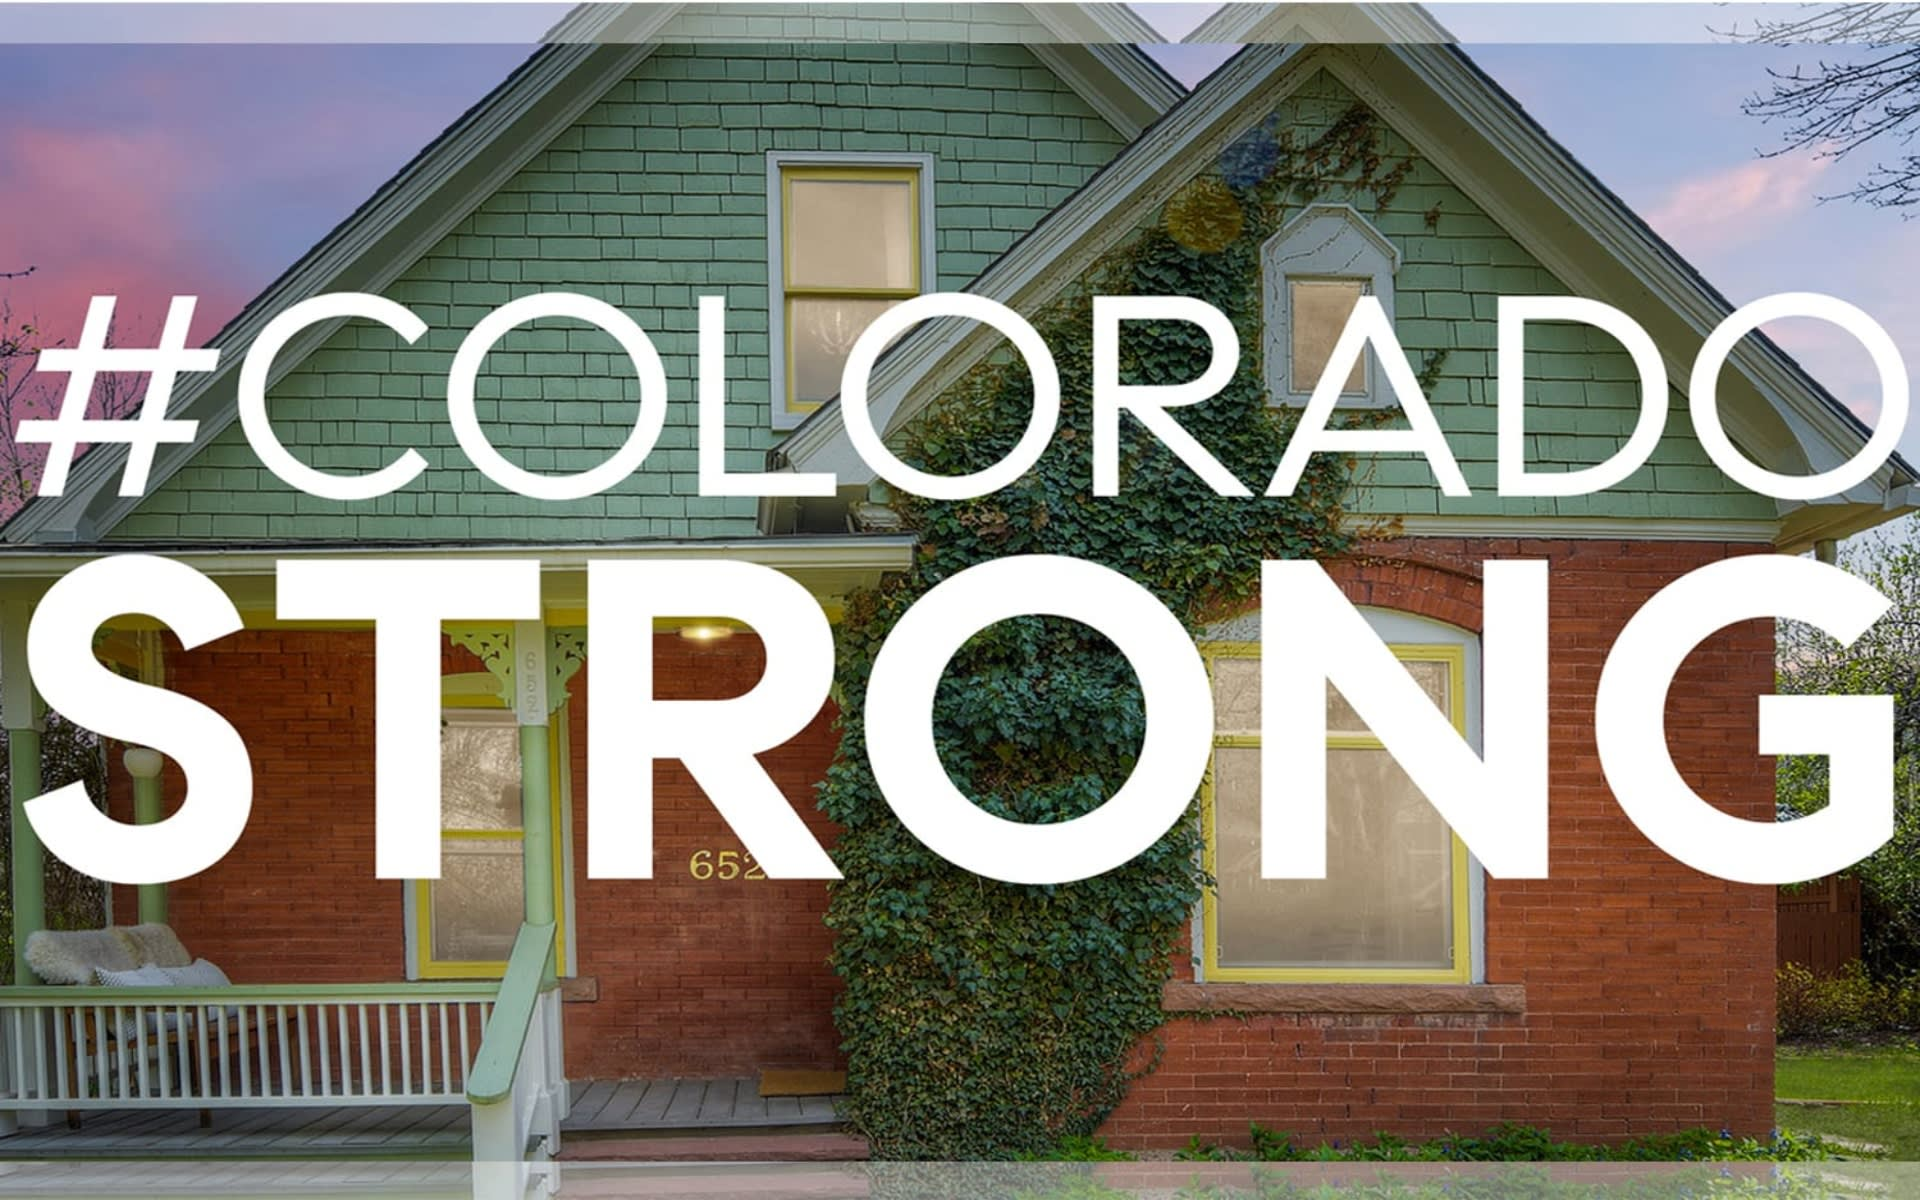 Boulder county real estate had another steady week.